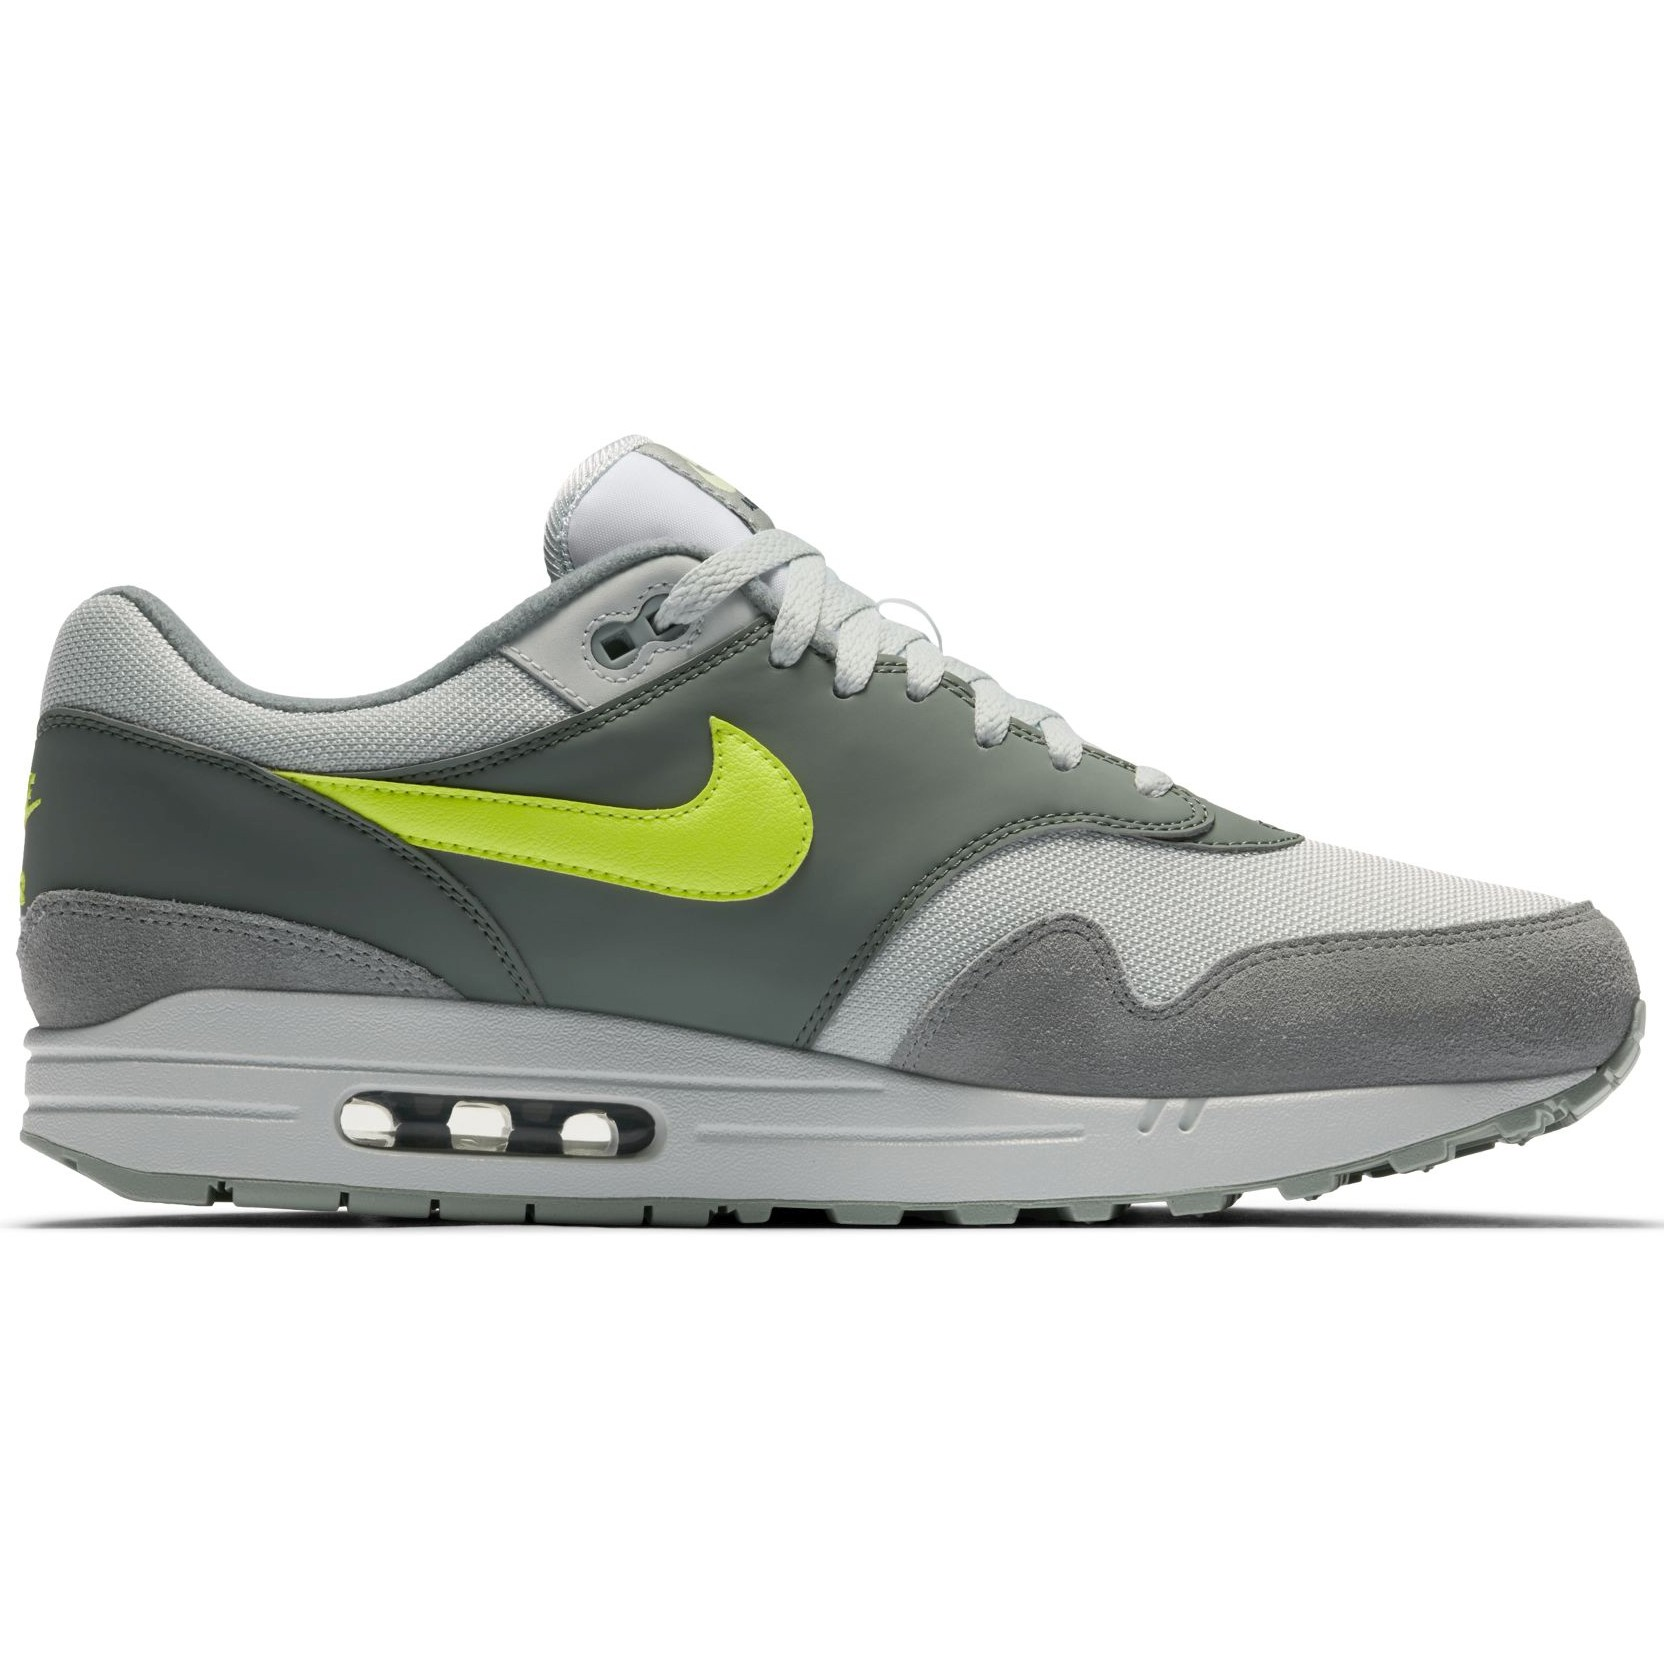 Nike Air Max 1 Grey Volt - Nike Air Max batai